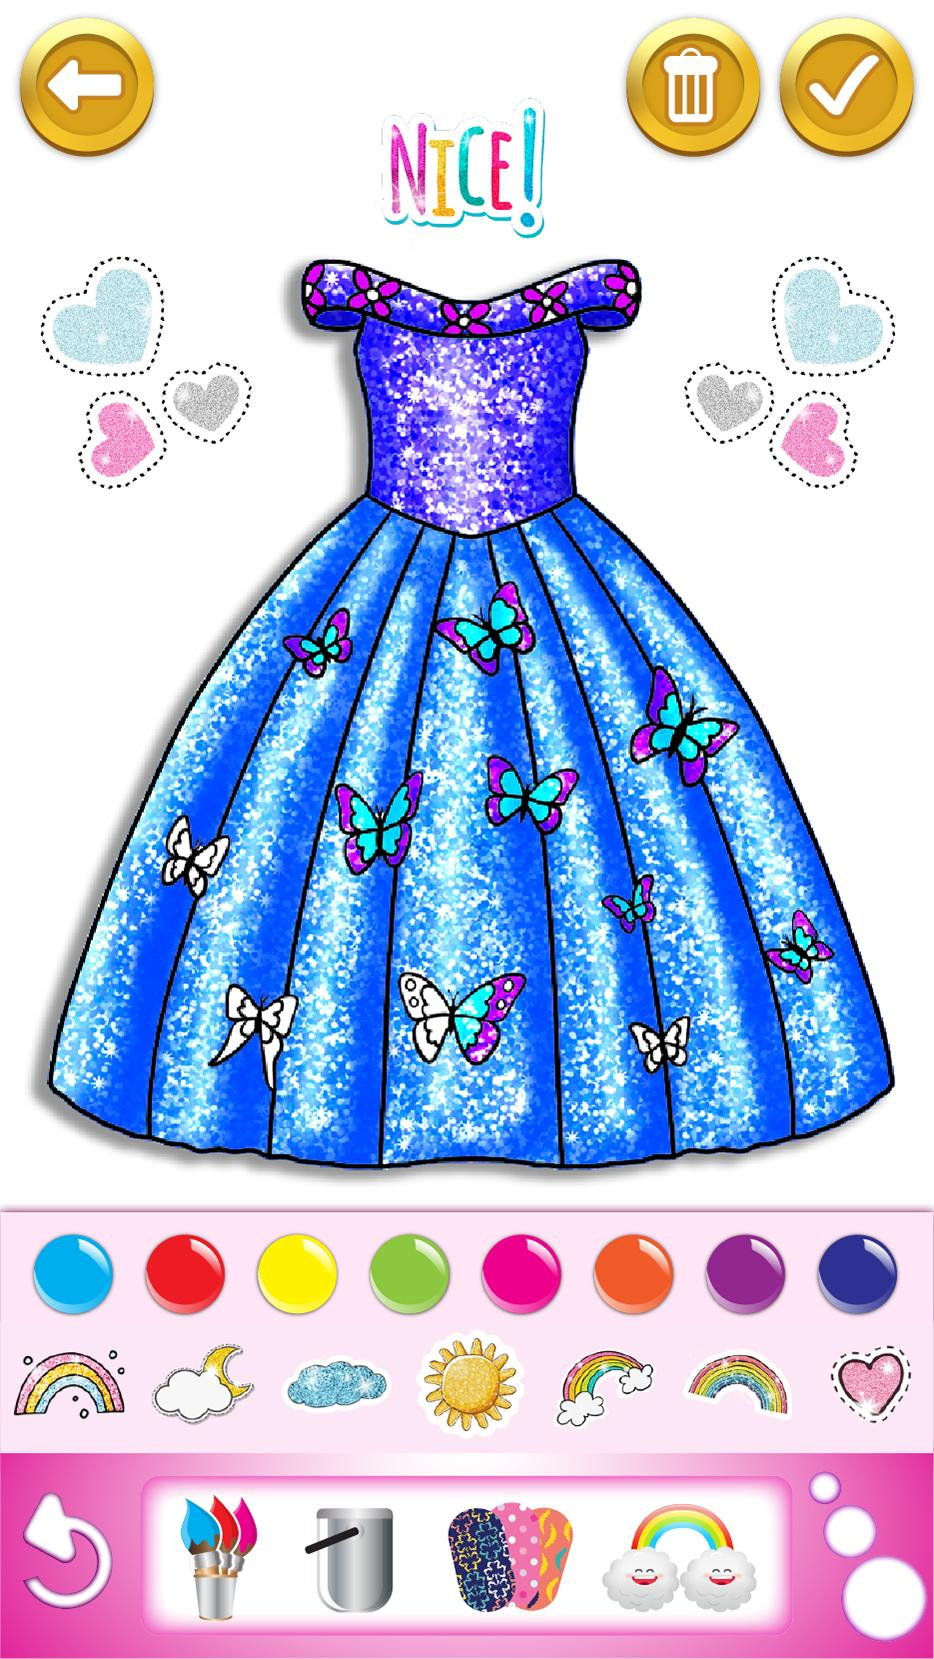 Glitter Dress Coloring And Drawing Book For Kids For Android Apk Download